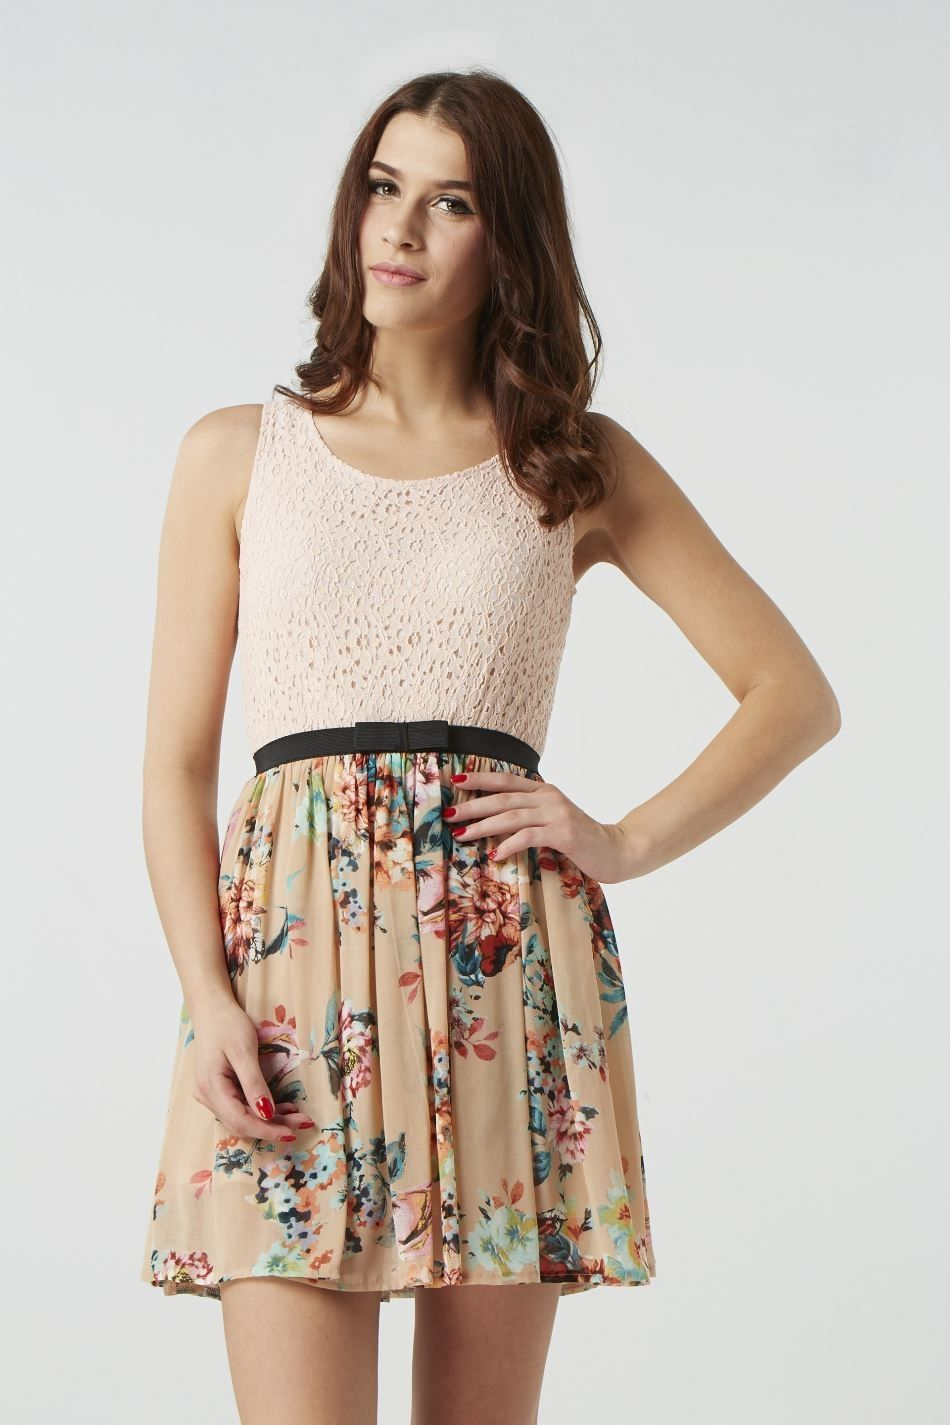 Crochet bodice skater dress at izabel shoes and clothes